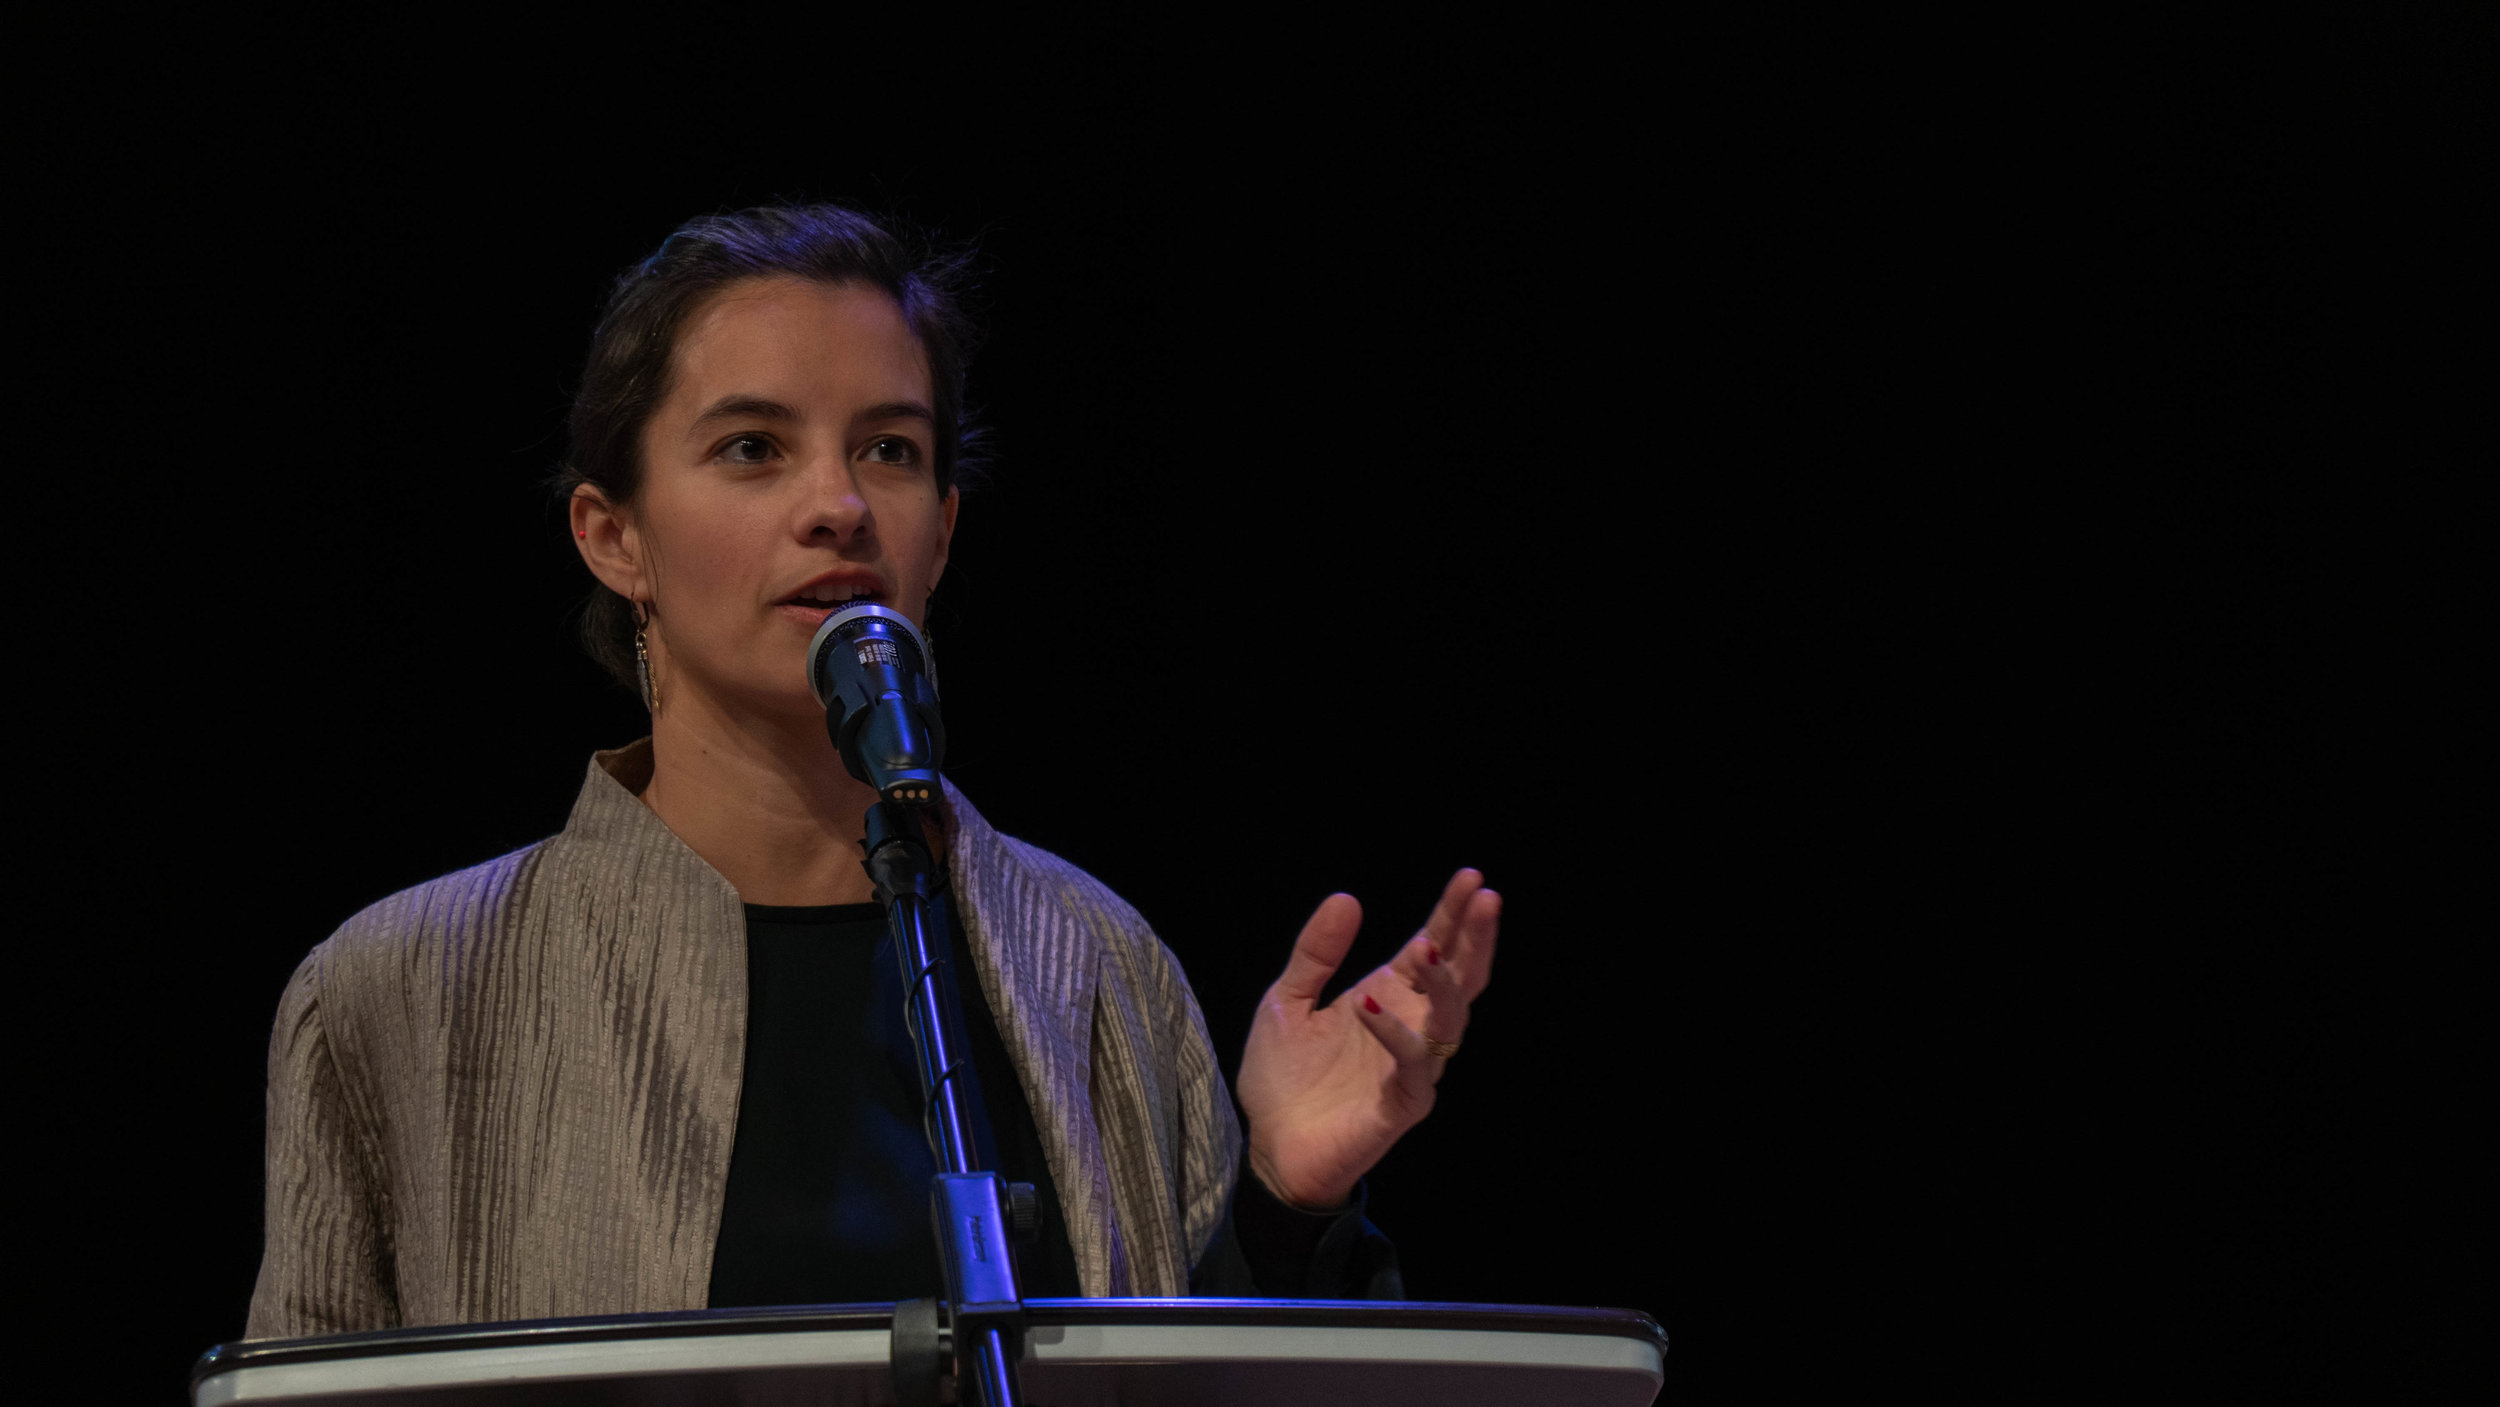 Julia Day, New York - Julia Day is an associate at Gehl New York, a firm founded under architect and planner Jan Gehl, whose research and literature on designing for human scale in cities has had far reaching influences on architecture and planning.